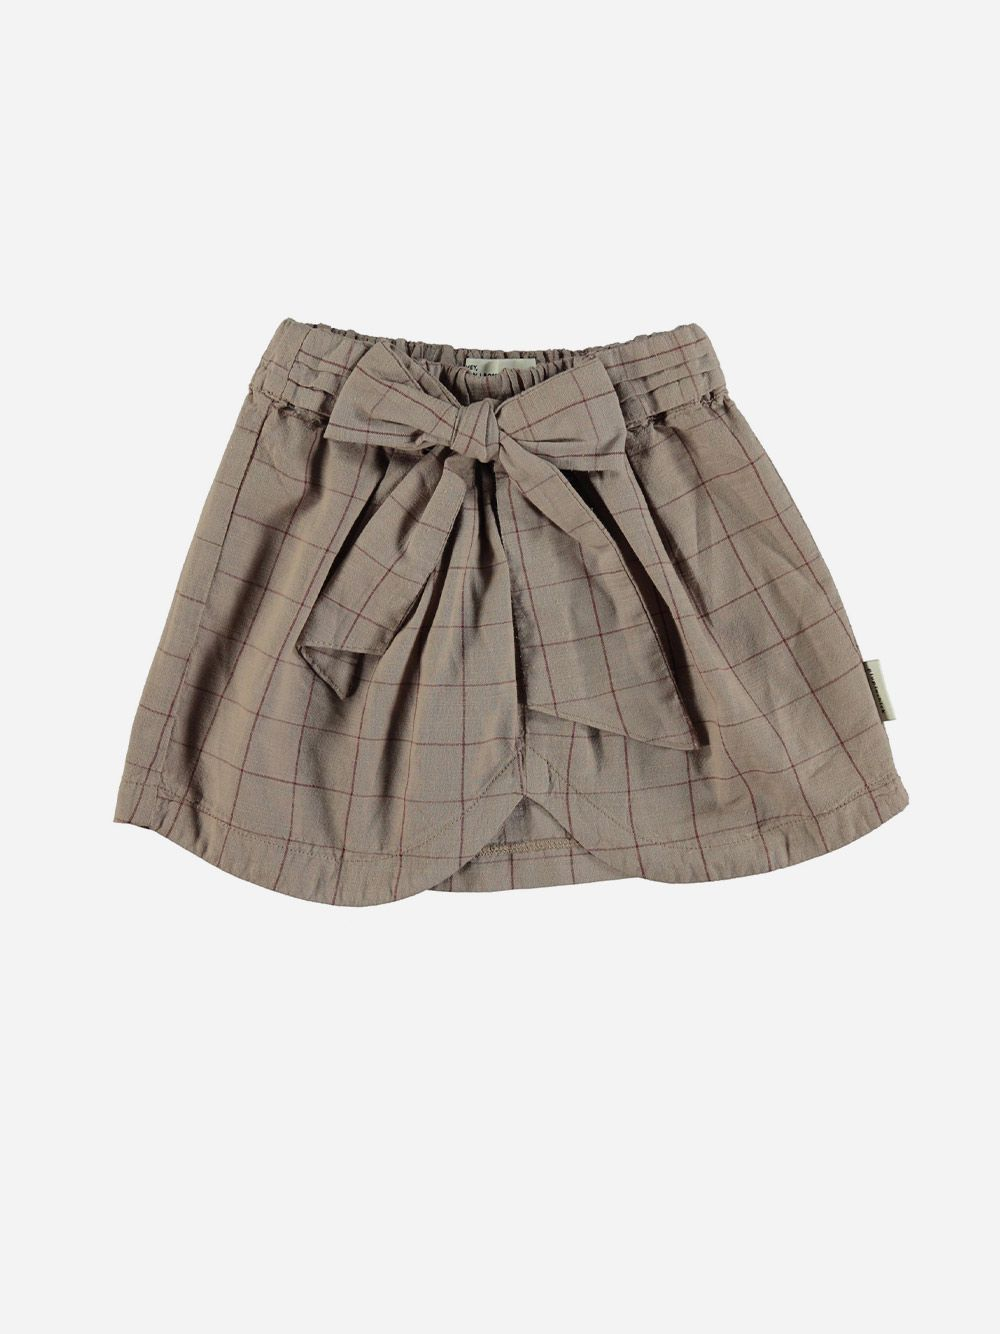 Short Skirt with Bow Taupe & Garnet Checkered